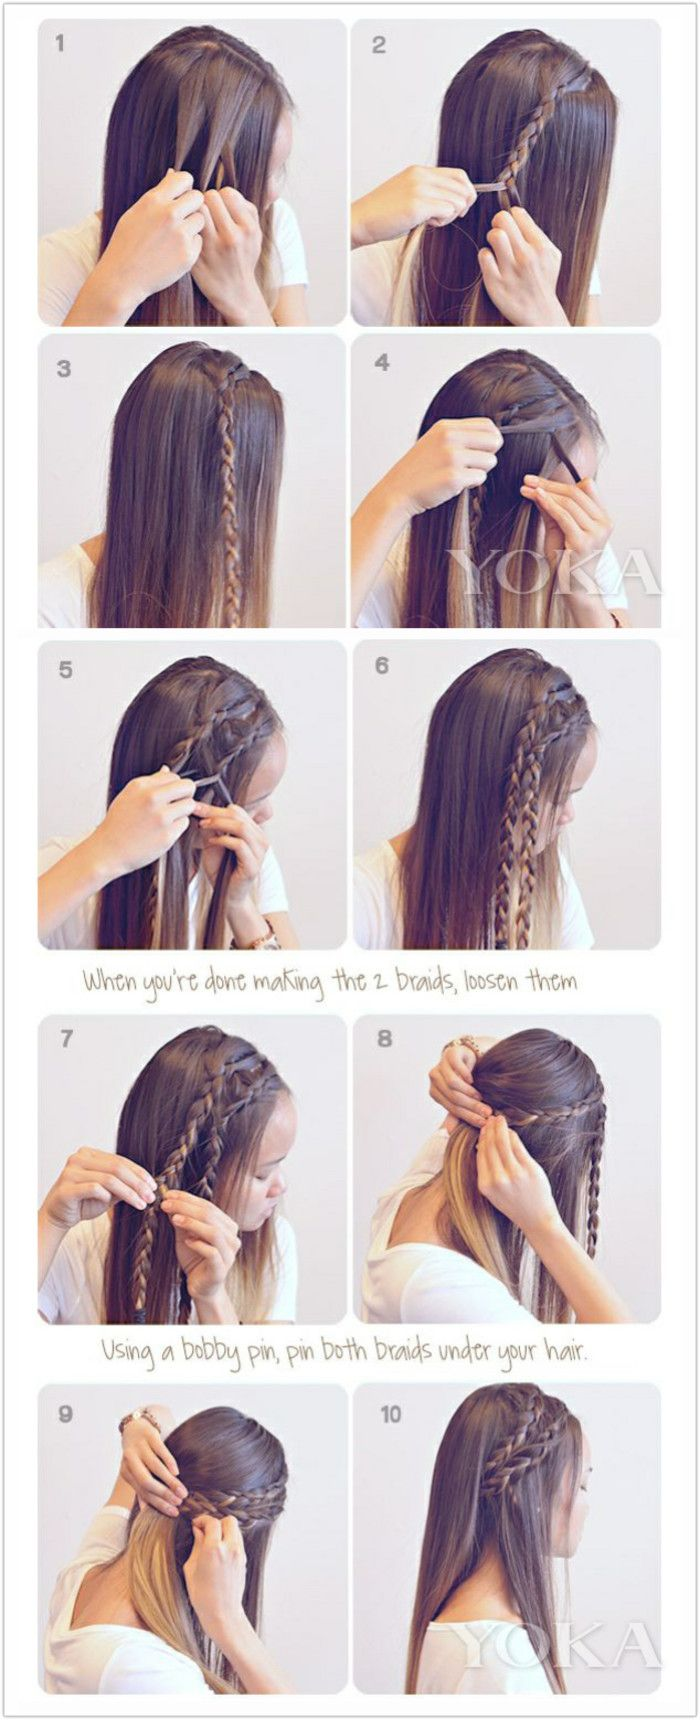 Simple Braid Hair Style Braid Idea Braids For Long Hair Hair Styles Hair Braid Diy